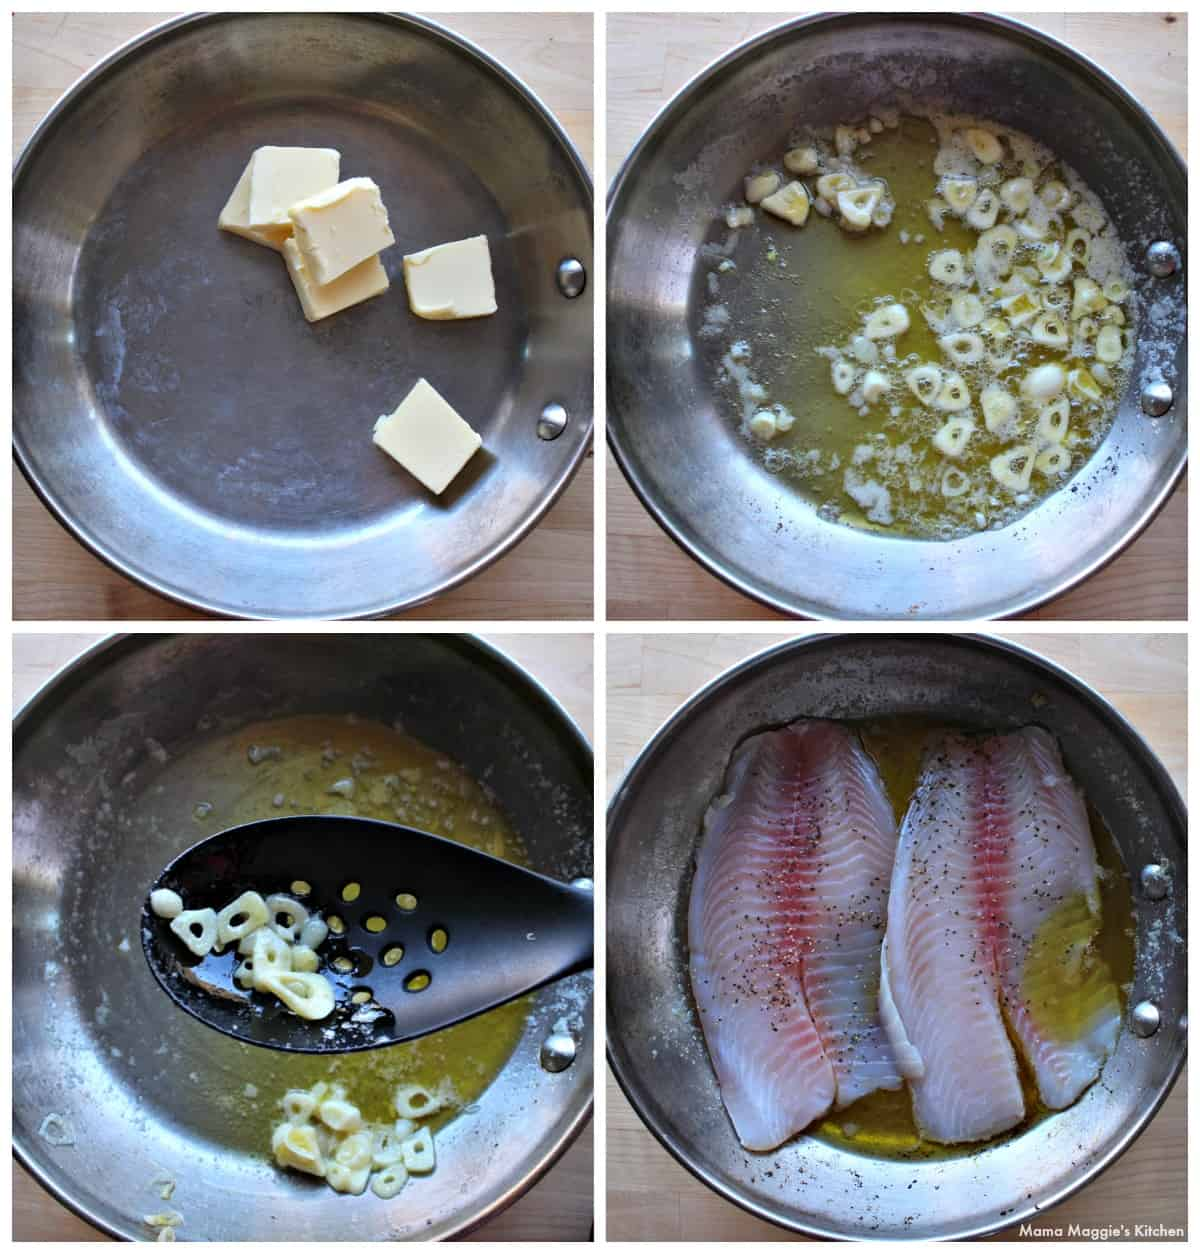 A collage showing how to make Pescado al Ajillo in a skillet.